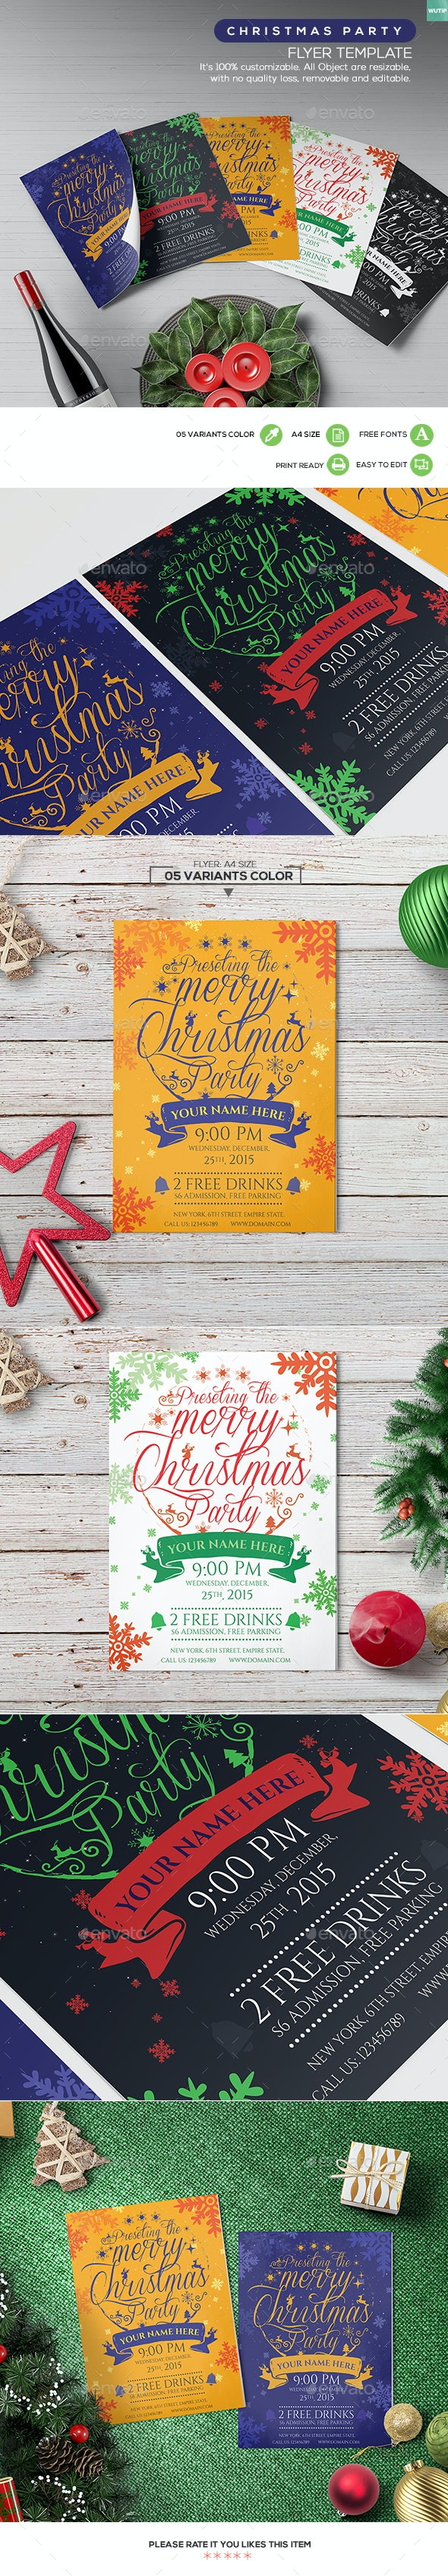 Christmas Party - Flyer Template 03 - Holidays Events